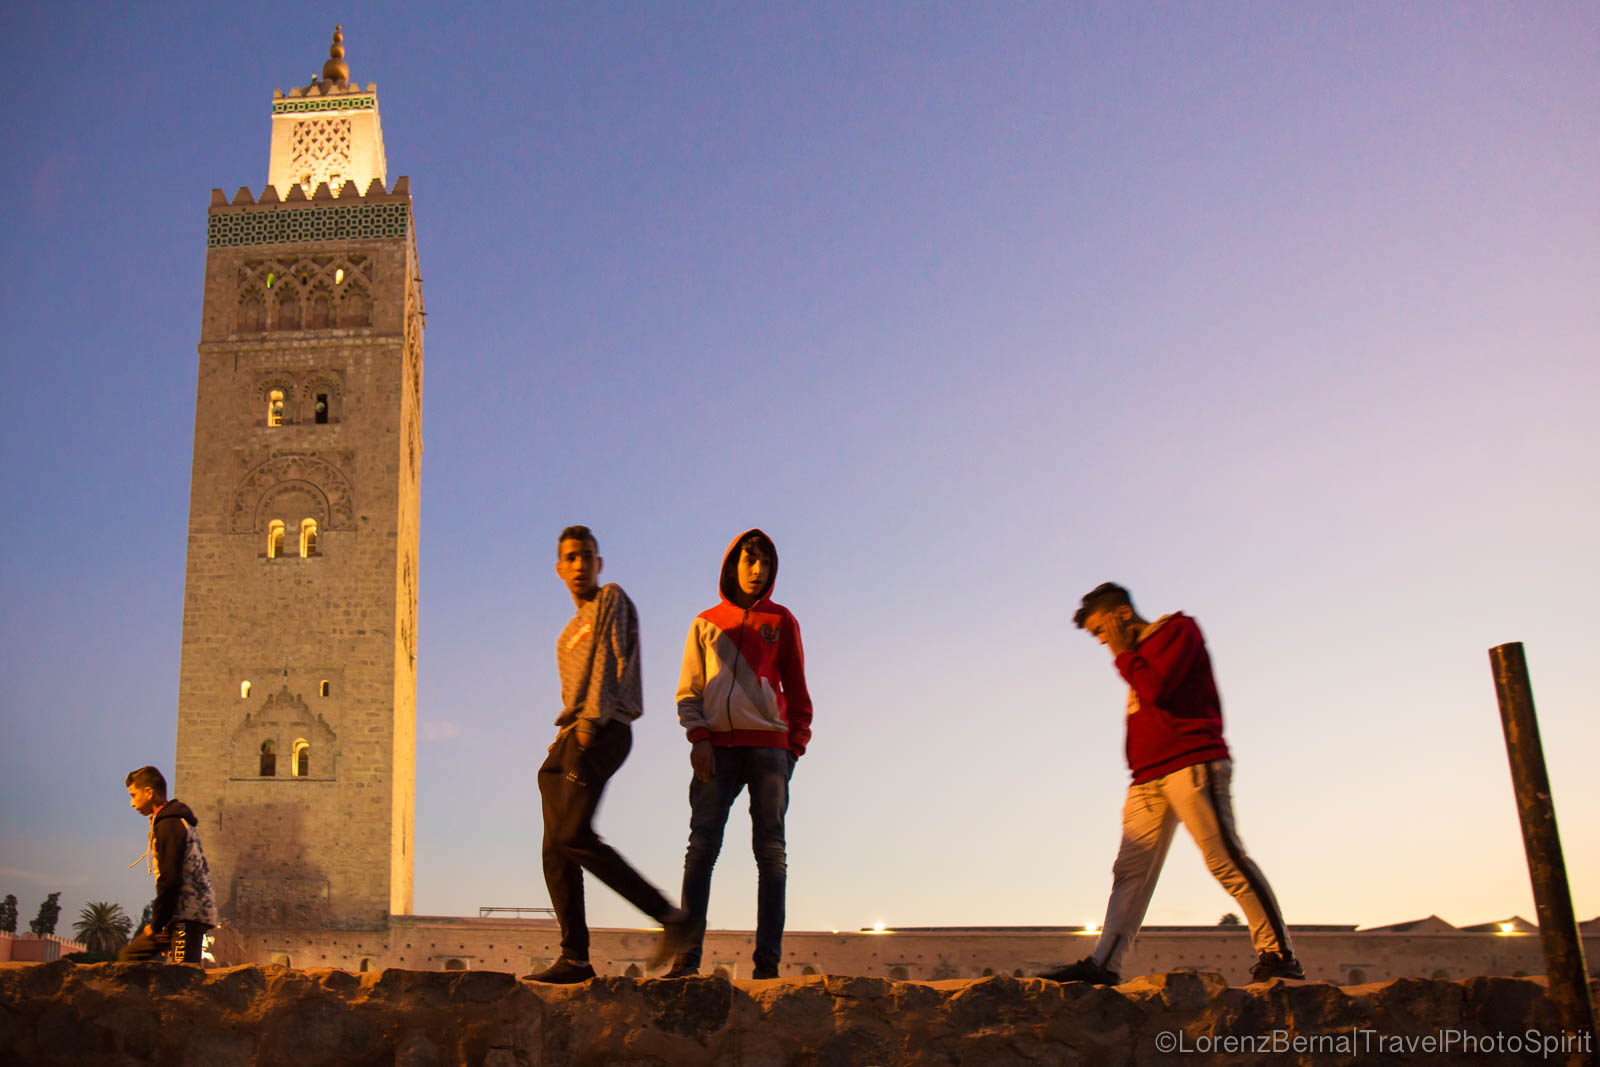 Young Moroccans walking over the ancient walls of the Koutoubia Mosque in Marrakech, after sunset. Best of Marrakech photo guide.